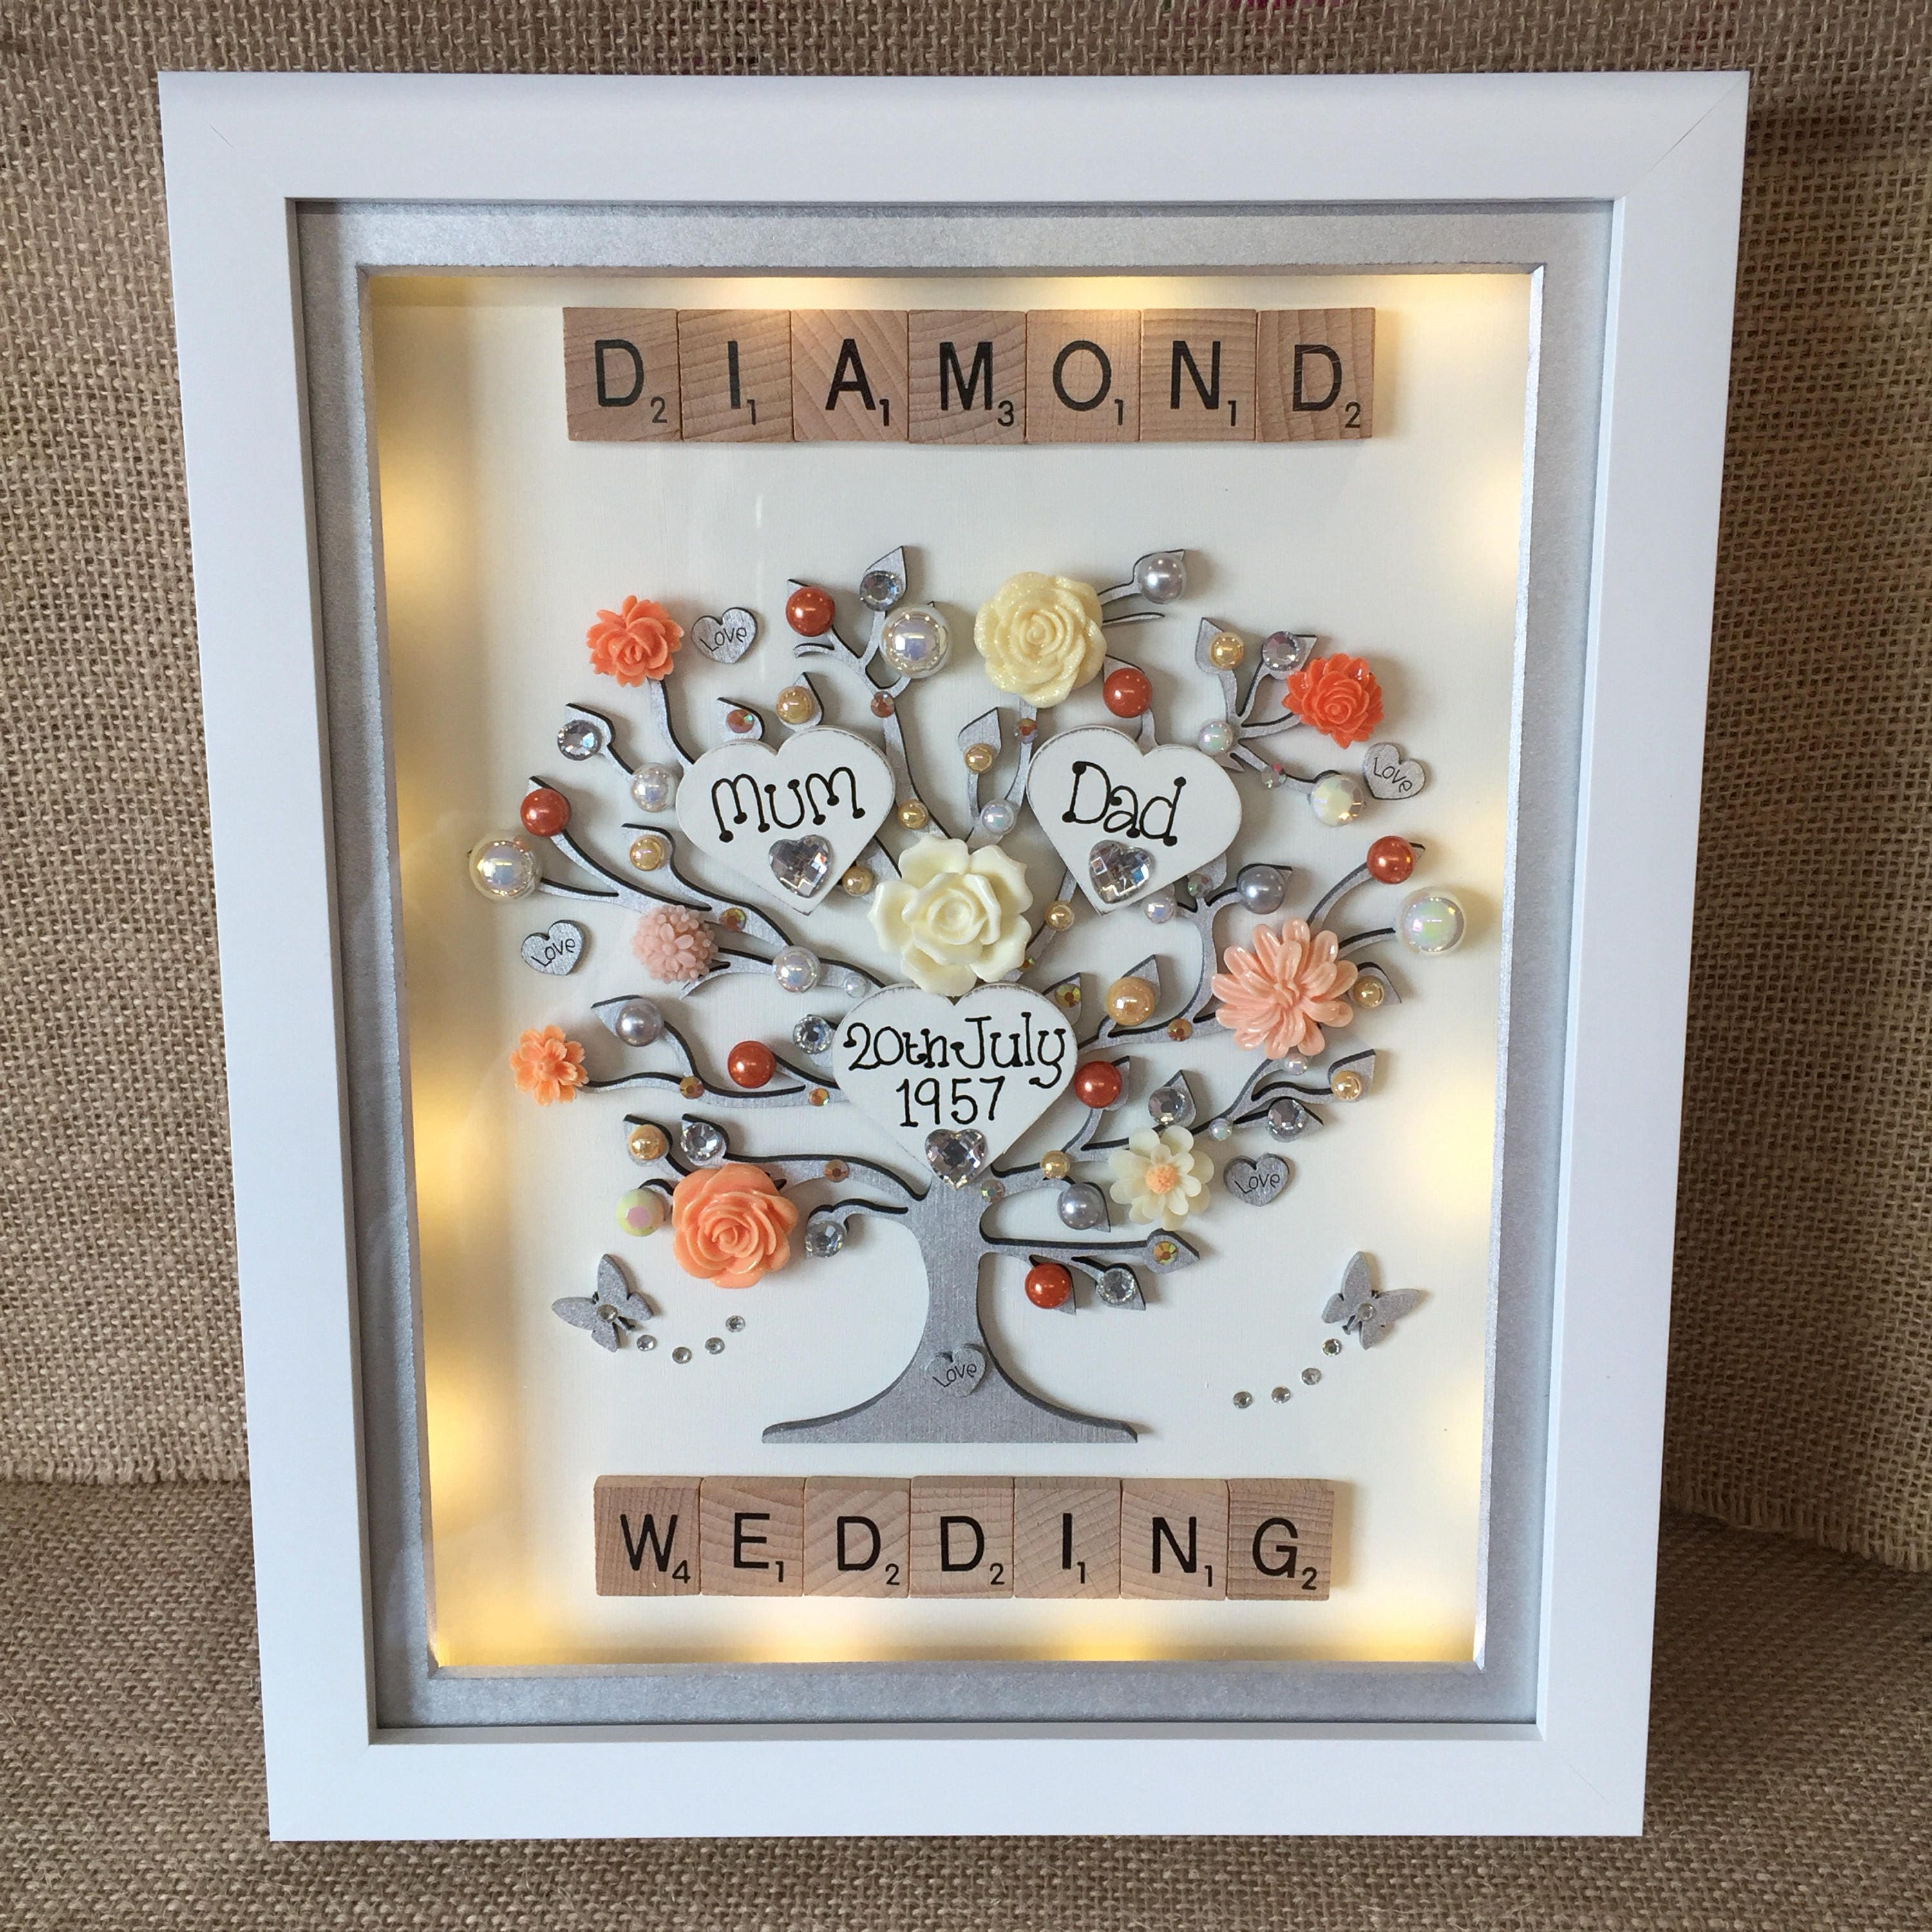 Wedding Anniversary List Of Gifts: LED Lit Deep Box Frame Perfect Wedding Or Anniversary Gift